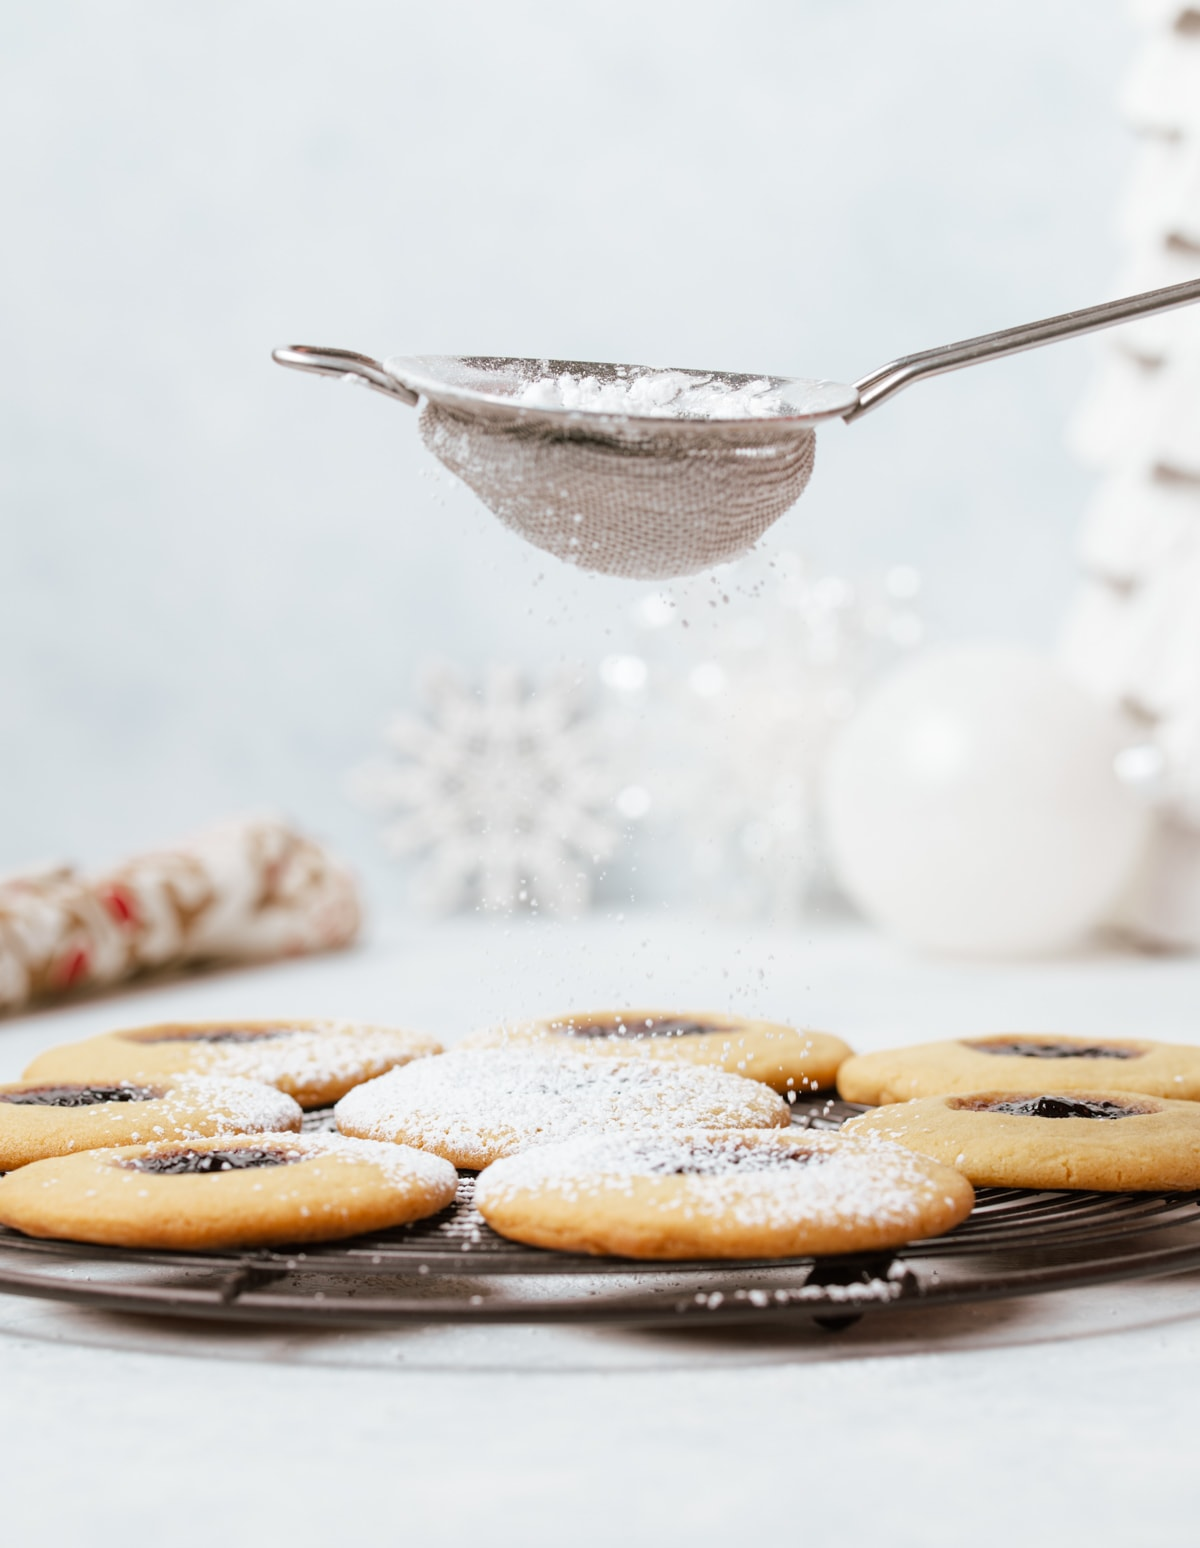 powdered sugar being dusted on round sandwich cookies with dark purple jam layered on a wire rack